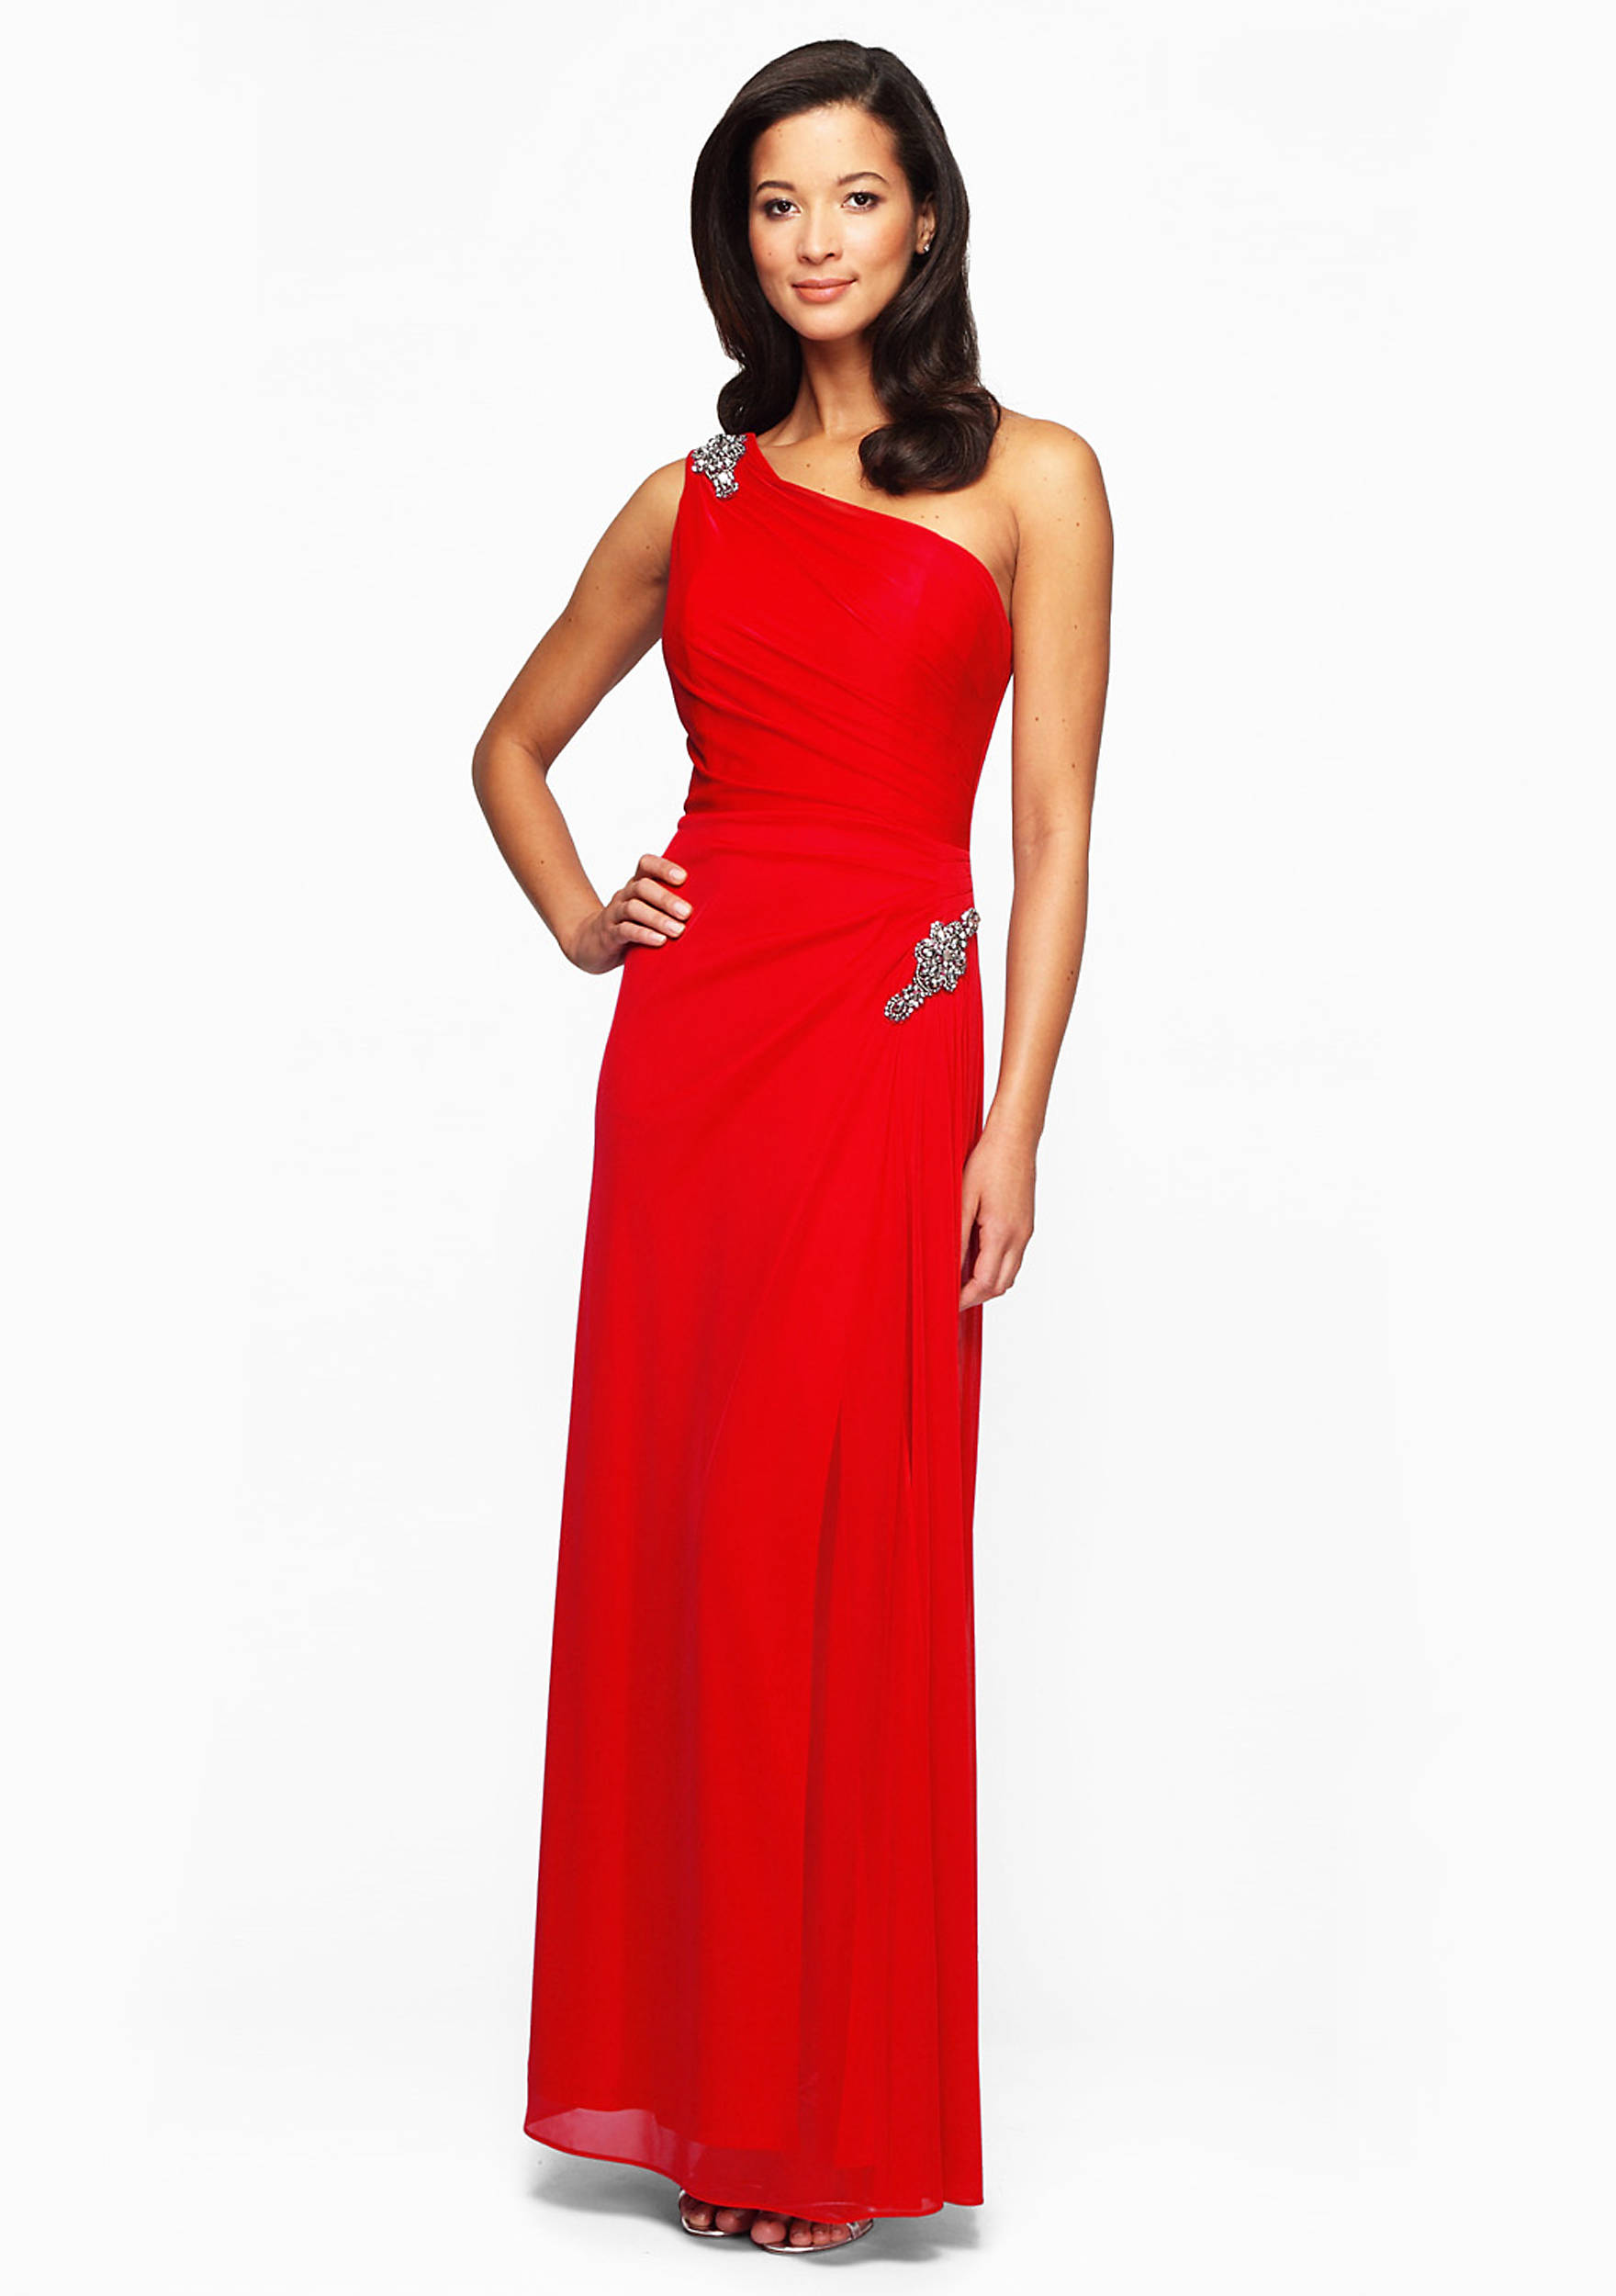 Fine Belk Gowns Photo - Wedding and flowers ispiration - sessa.us